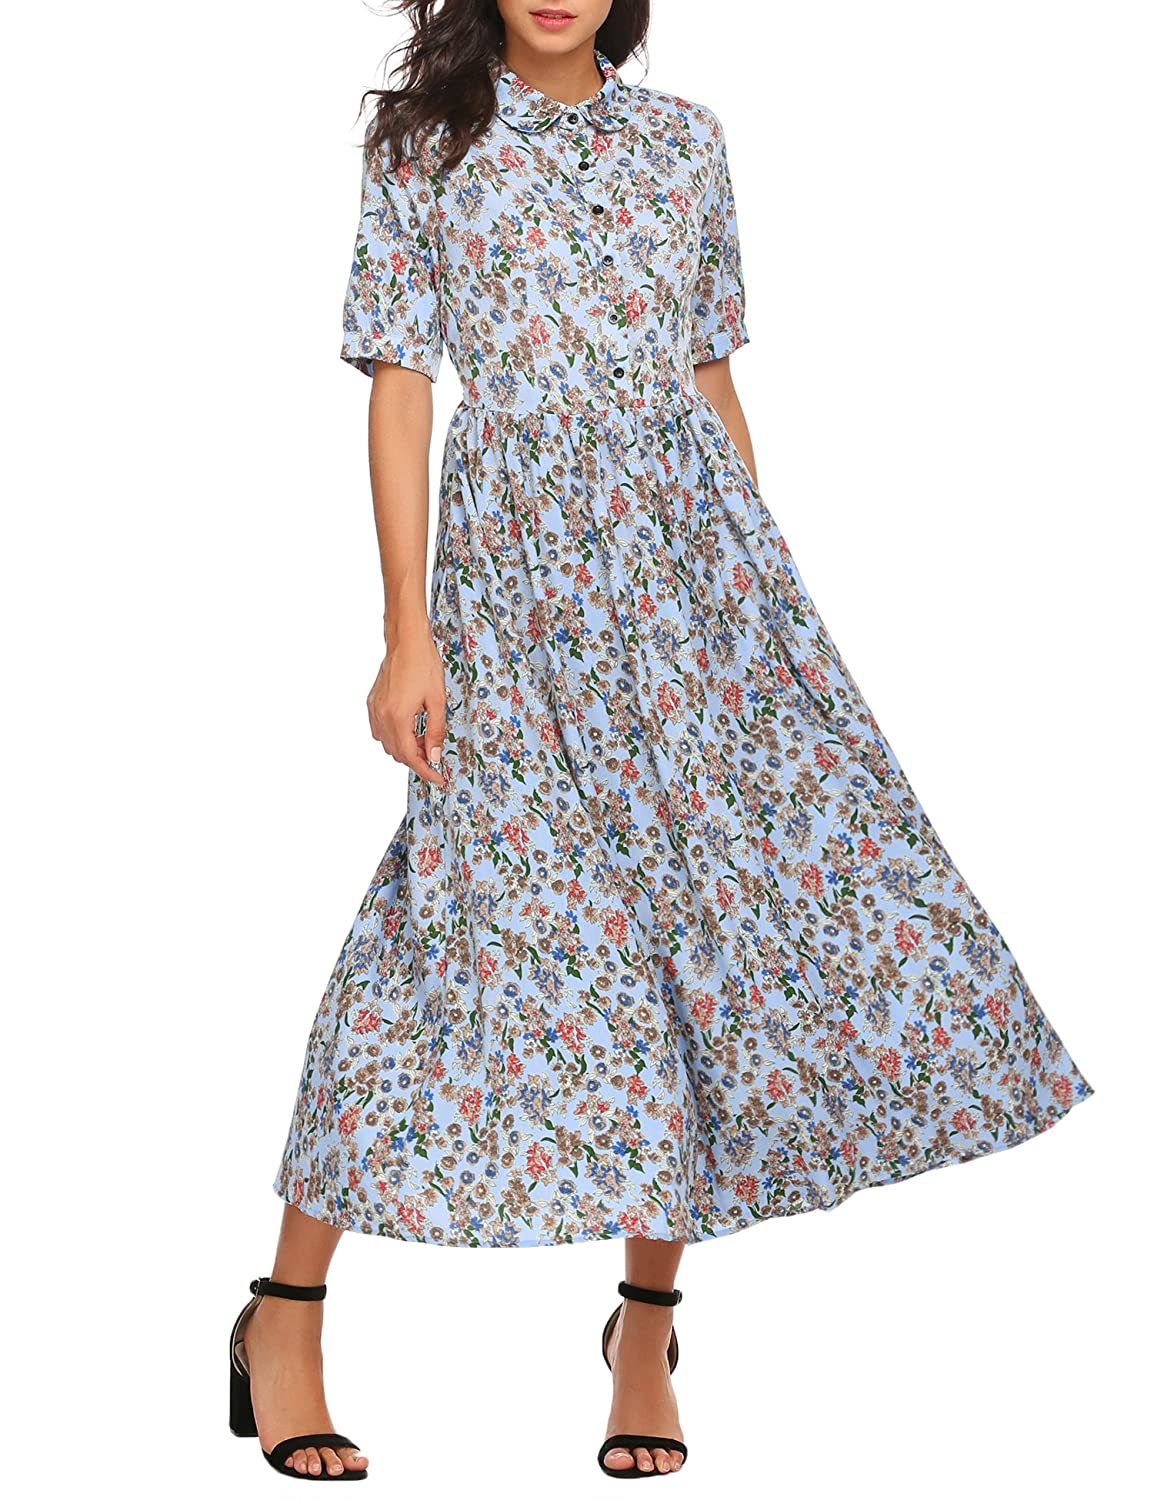 1930s Costumes- Bride of Frankenstein, Betty Boop, Olive Oyl, Bonnie & Clyde ACEVOG Womens Vintage Style Short Sleeve Floral Print Long Maxi Dress $36.19 AT vintagedancer.com